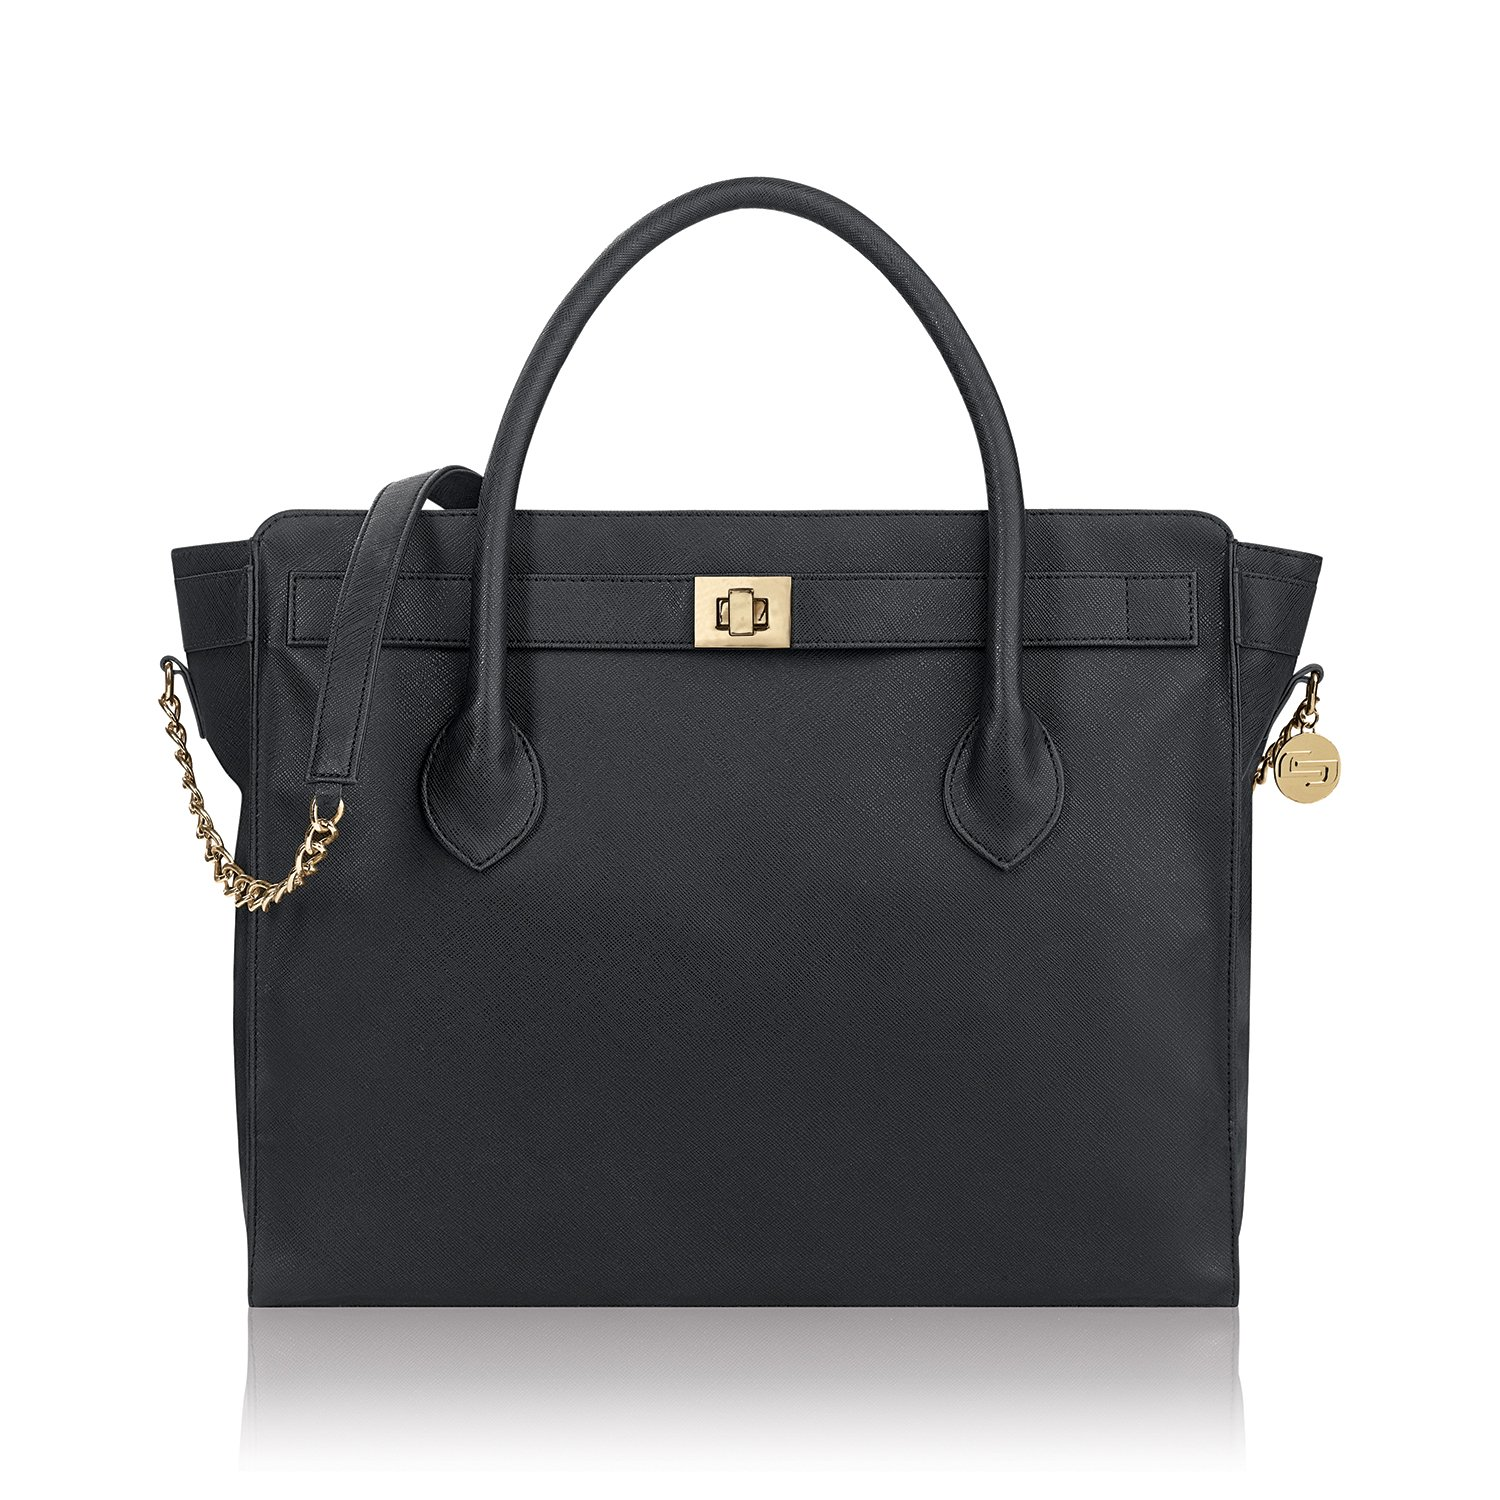 Solo Madison Tote Bag with Laptop Compartment, Black